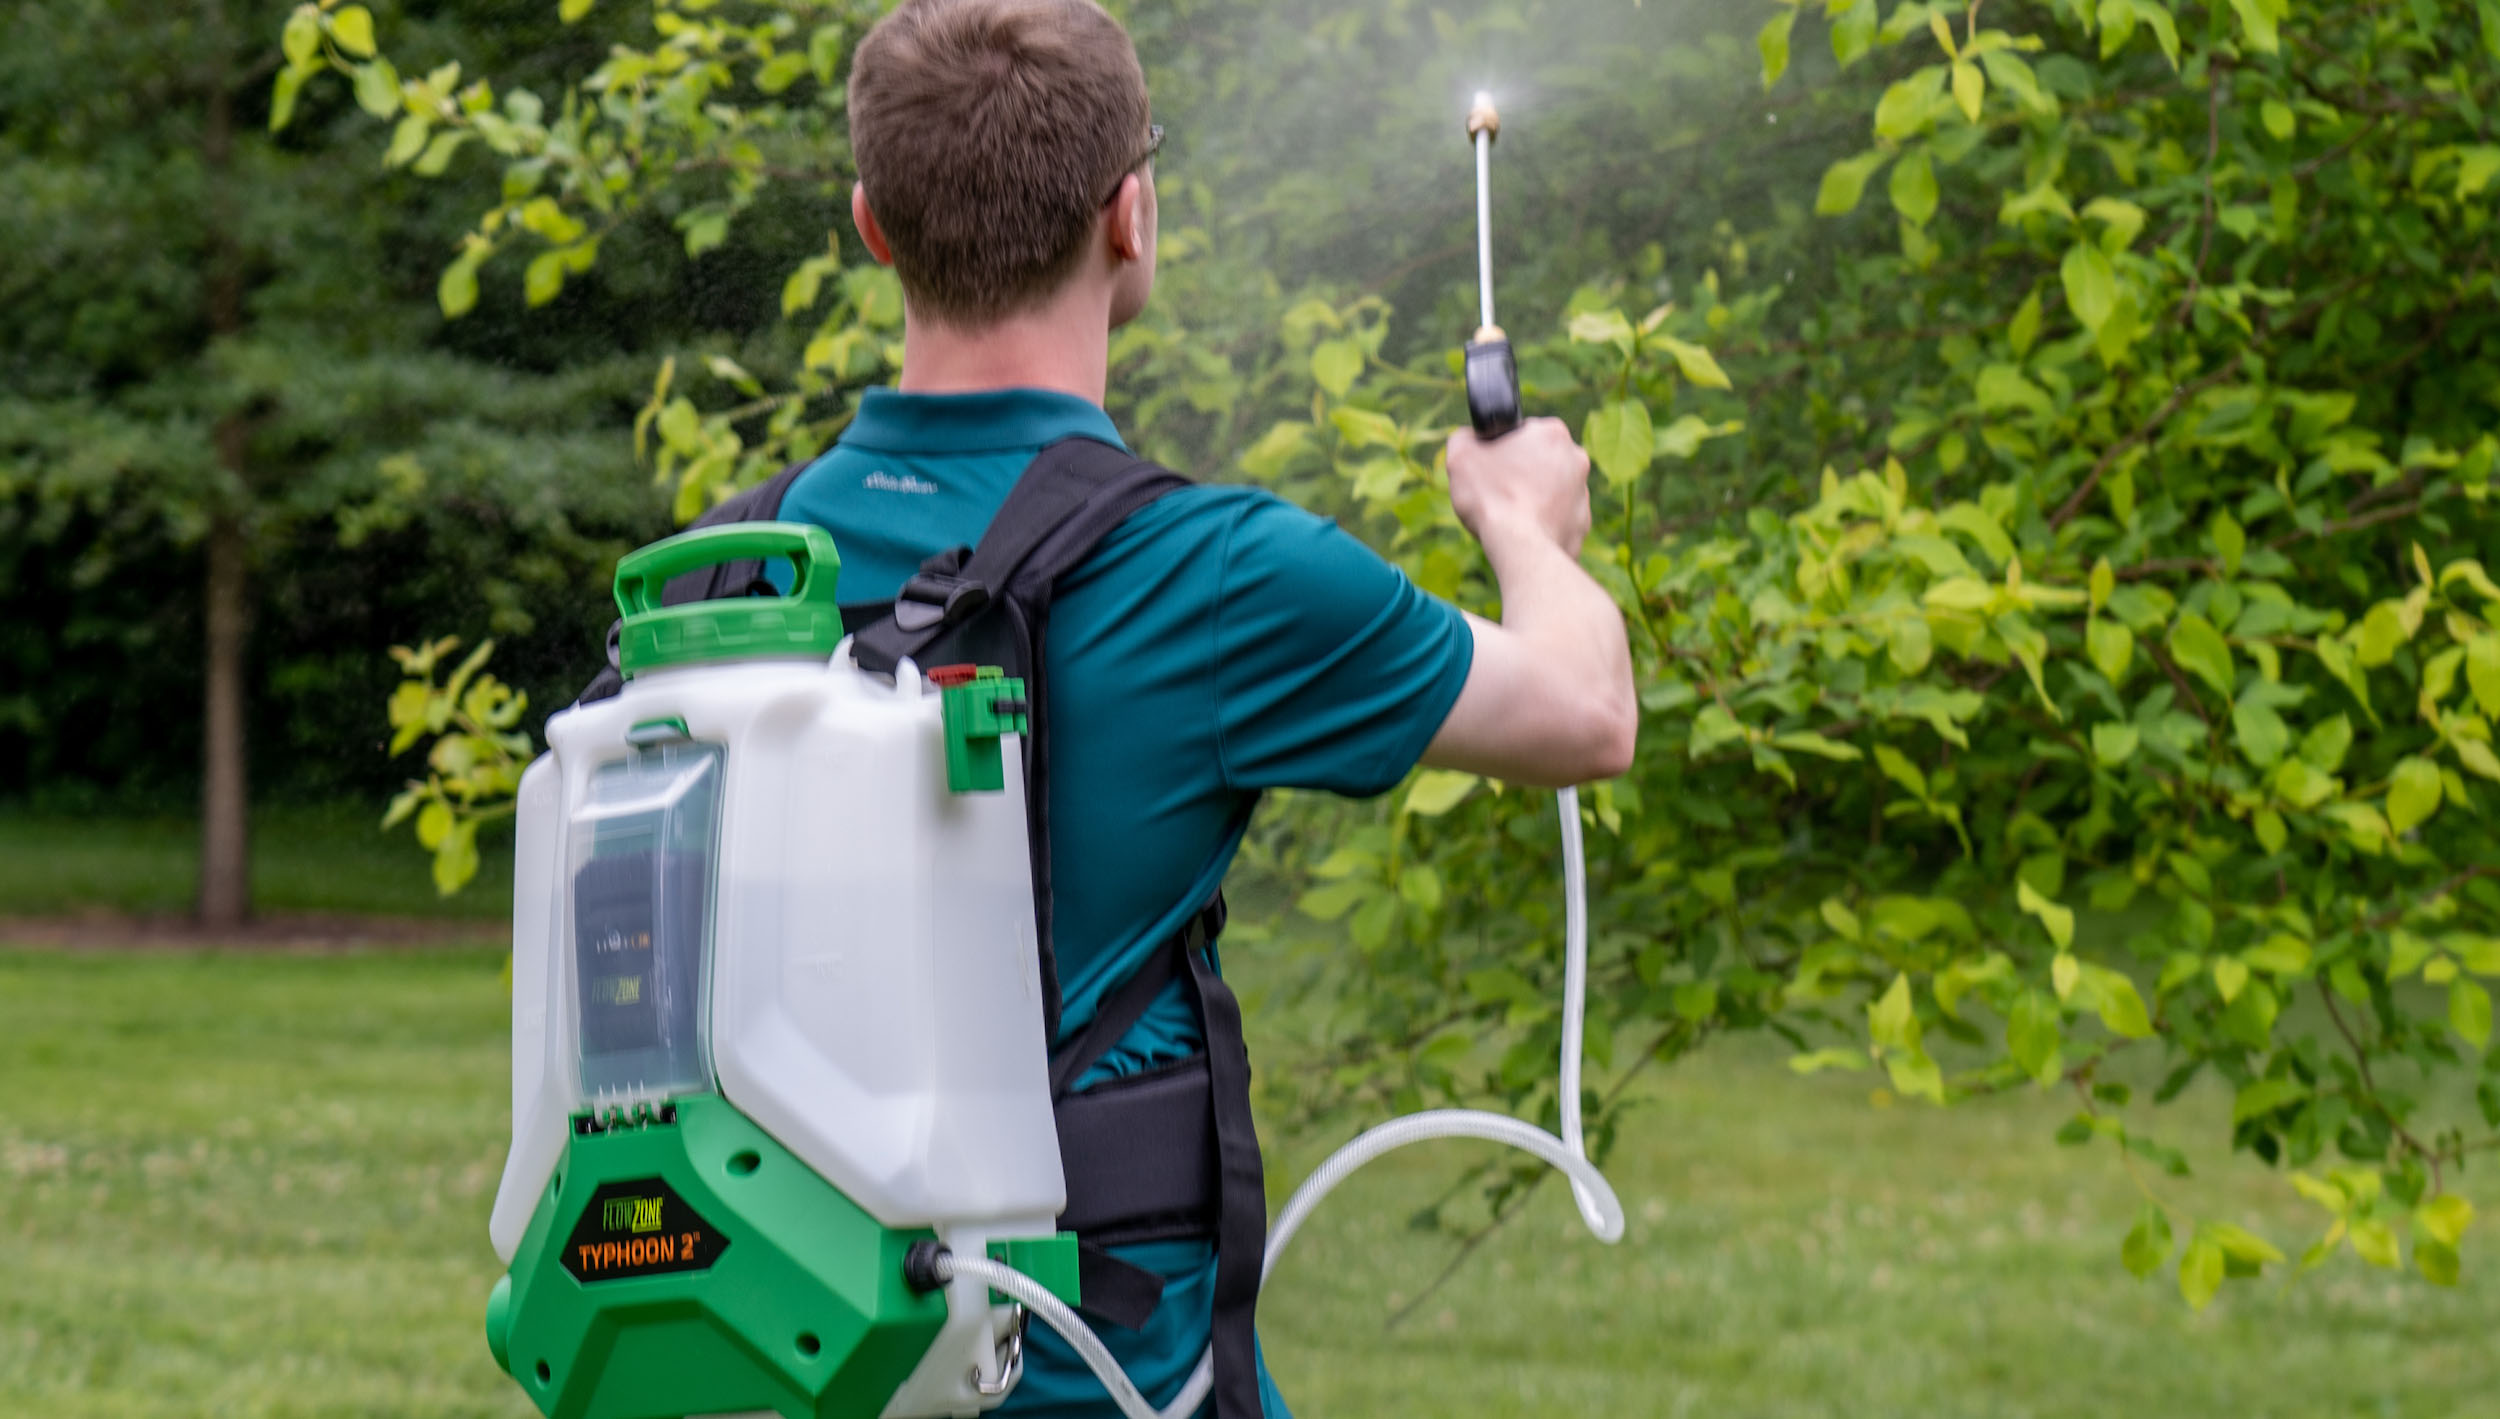 Man with FlowZone battery powered backpack sprayer misting a tree with water